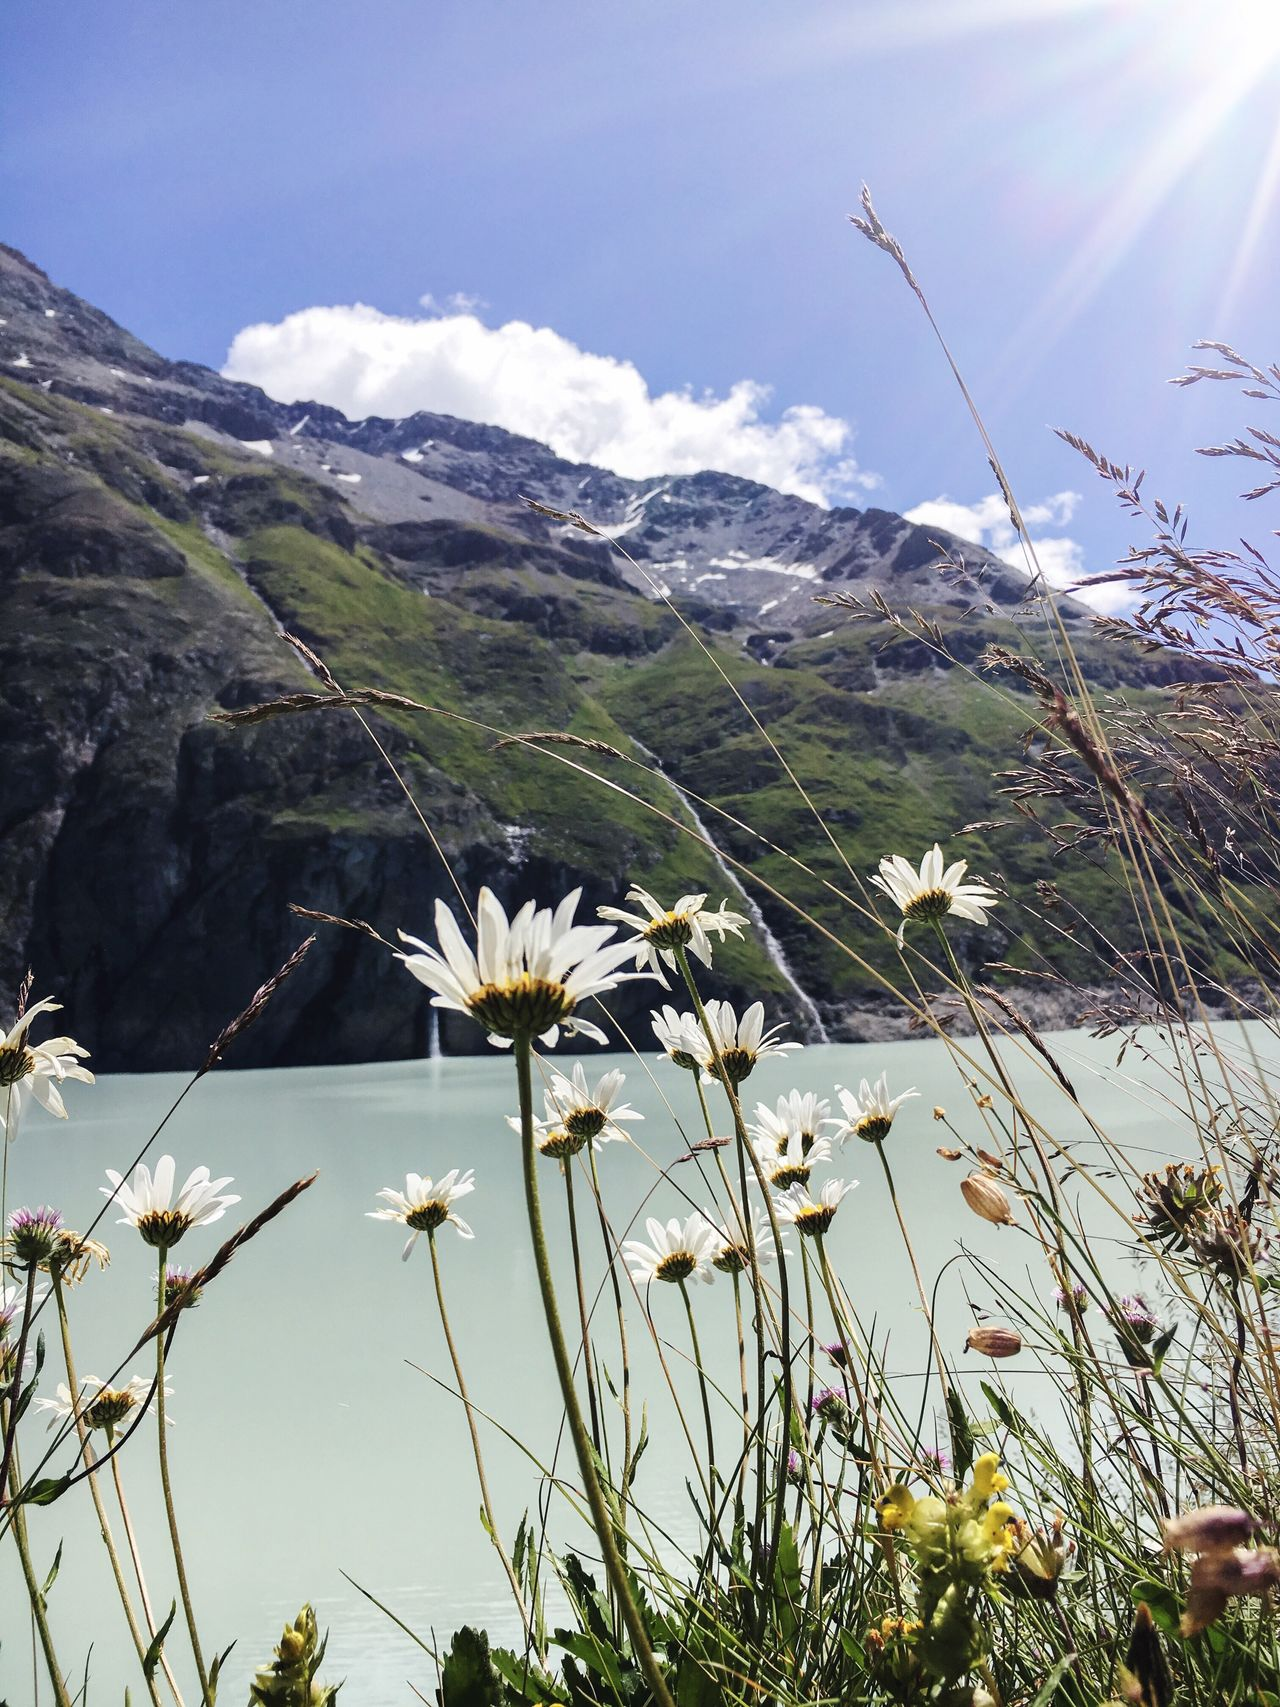 Flower Fragility Freshness Daisy Beauty In Nature Growth Plant White Color Mountain Nature Water Stem Petal Sky Daisies Wildflower Flower Head Cloud Non-urban Scene Day Col Des Roux 2800metrs High Altitude Lac Des Dix Switzerland